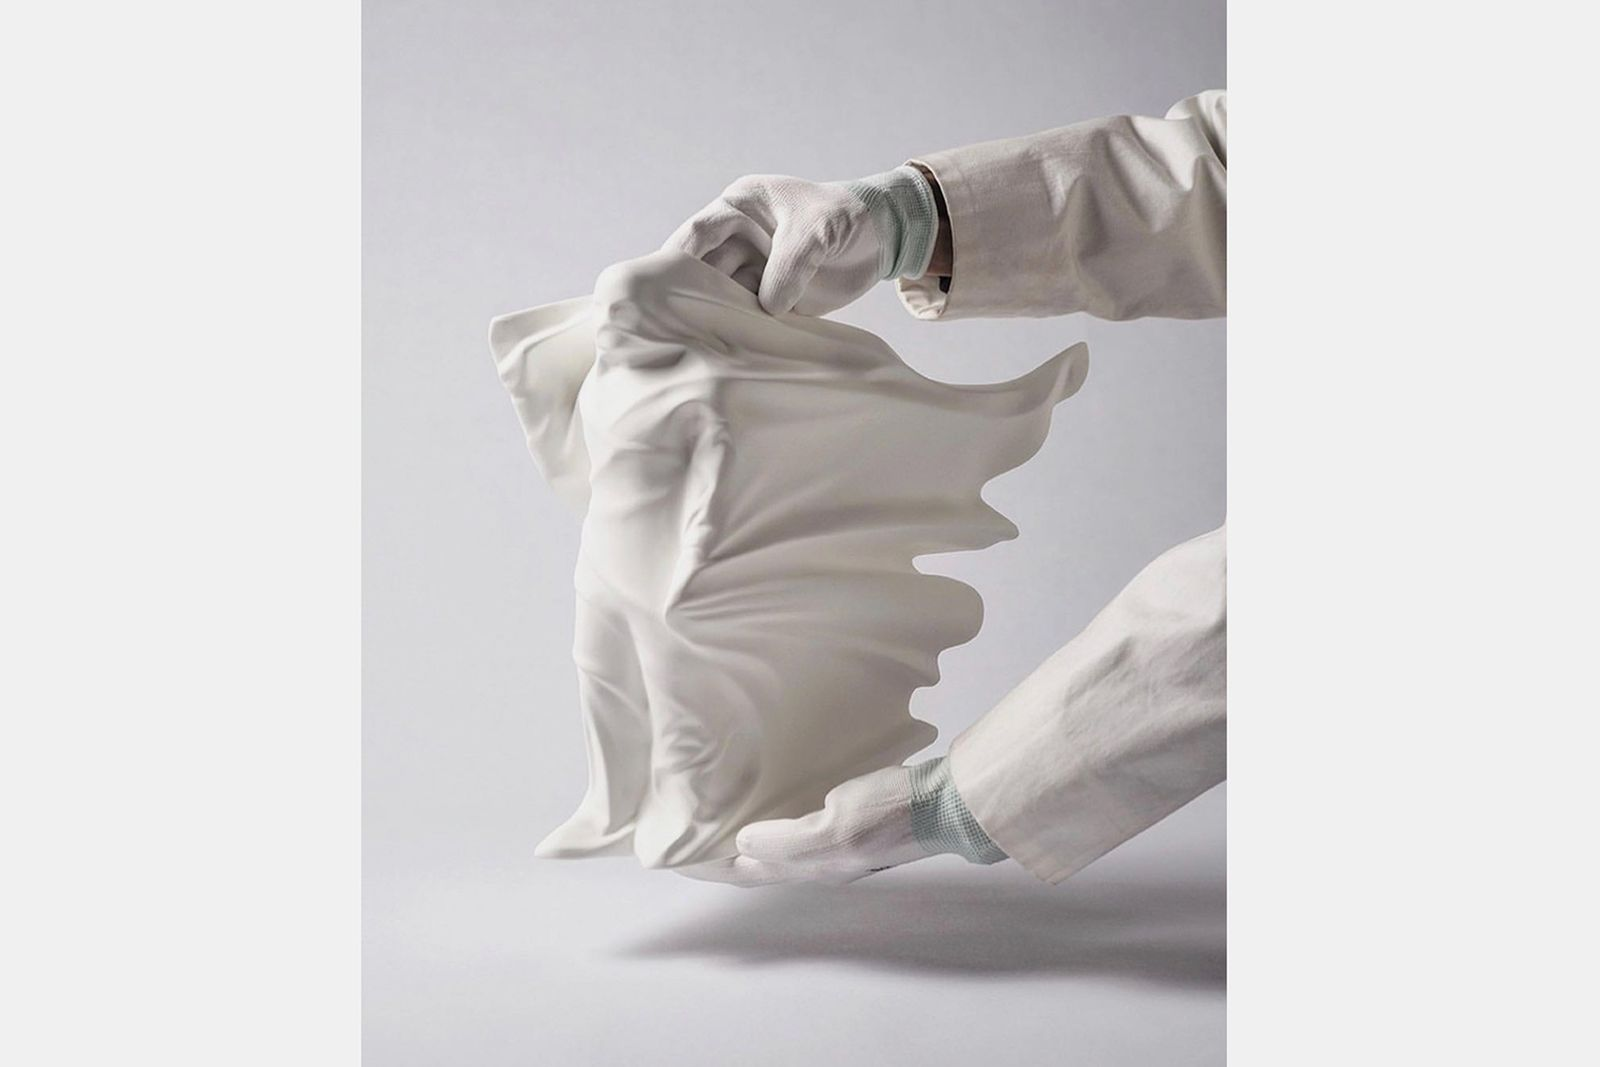 daniel arsham hollow figure